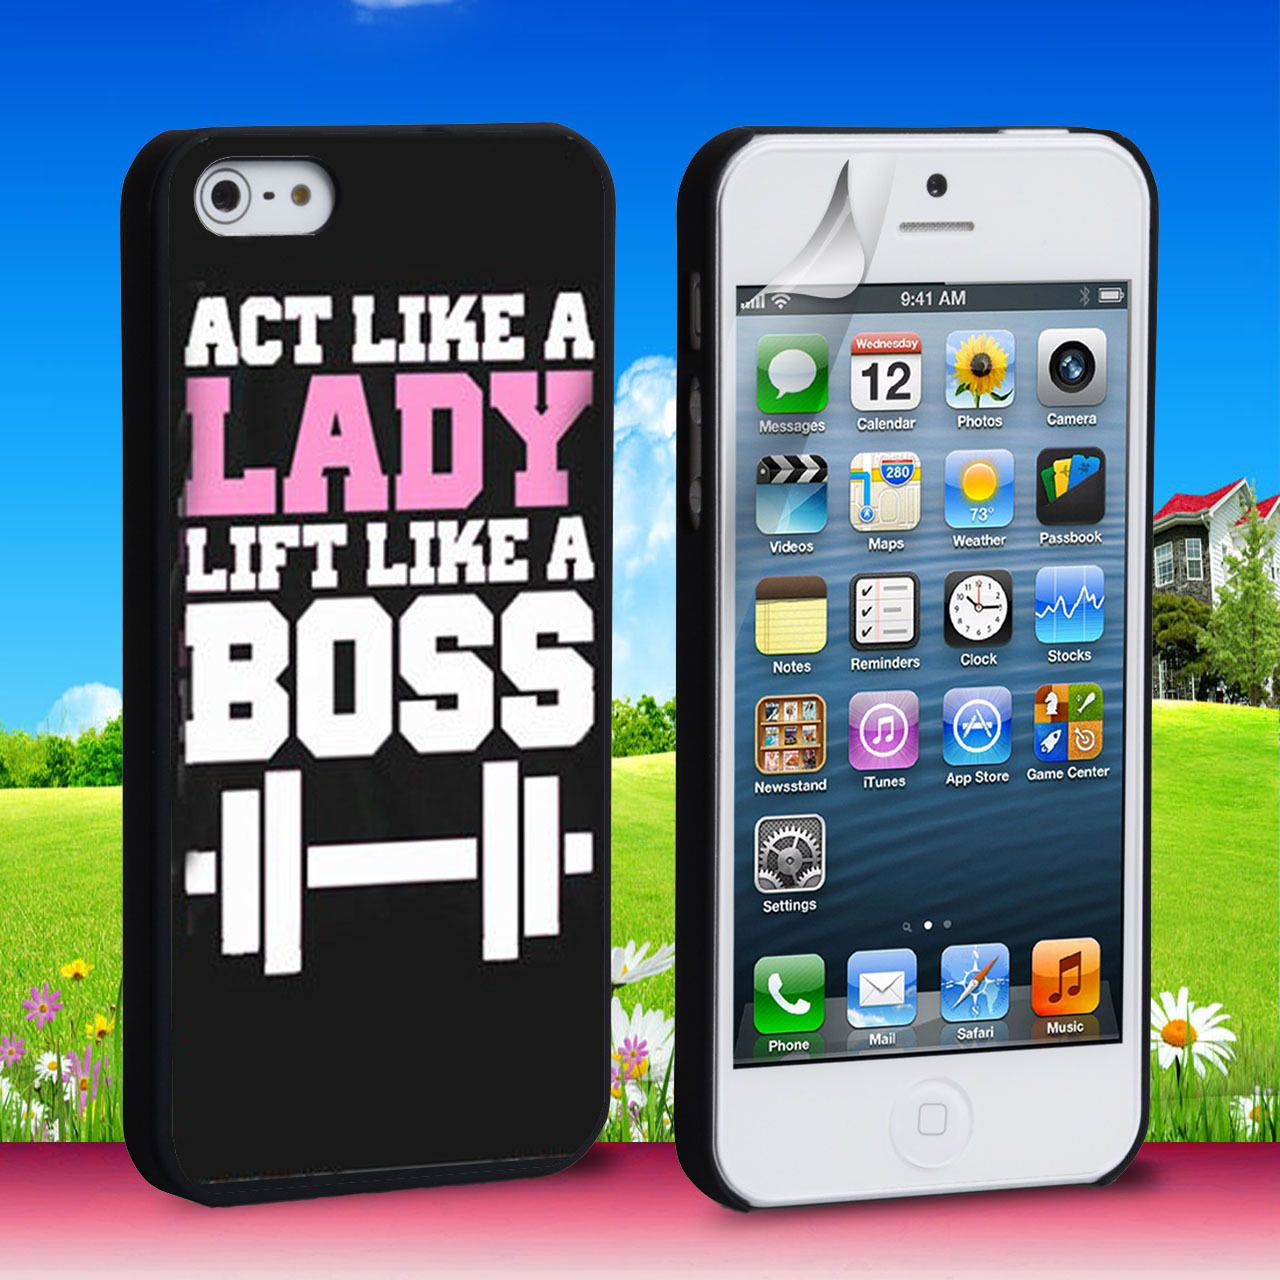 Act Like a Lady Lift Like a Boss iPhone 4 5 6 6 Plus Case